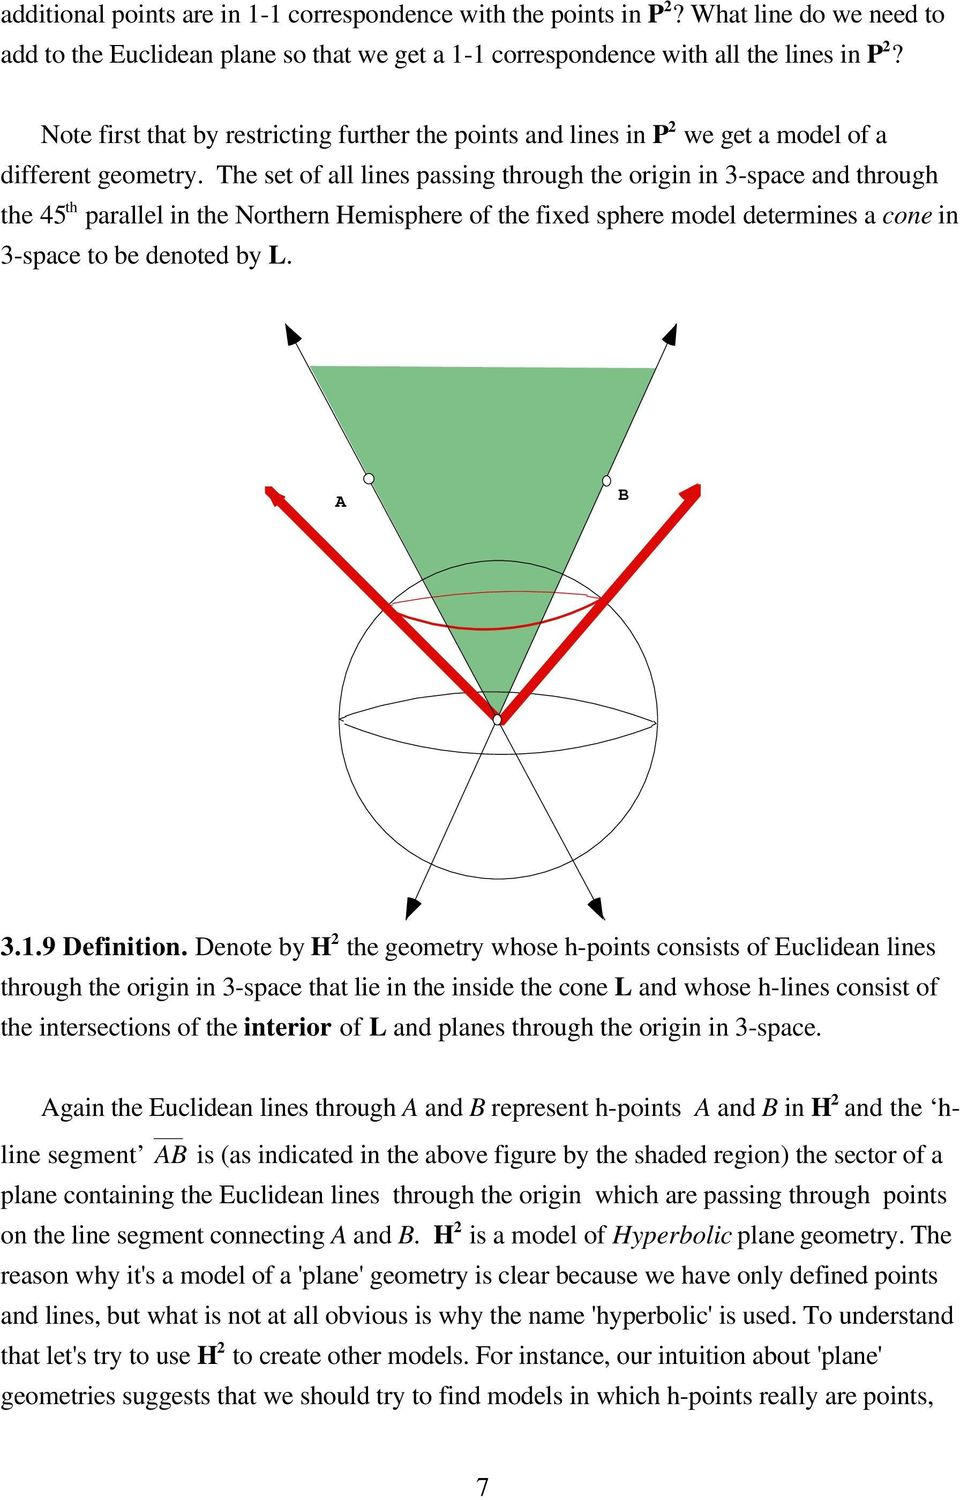 The set of all lines passing through the origin in 3-space and through the 45 th parallel in the Northern Hemisphere of the fixed sphere model determines a cone in 3-space to be denoted by L. B 3.1.